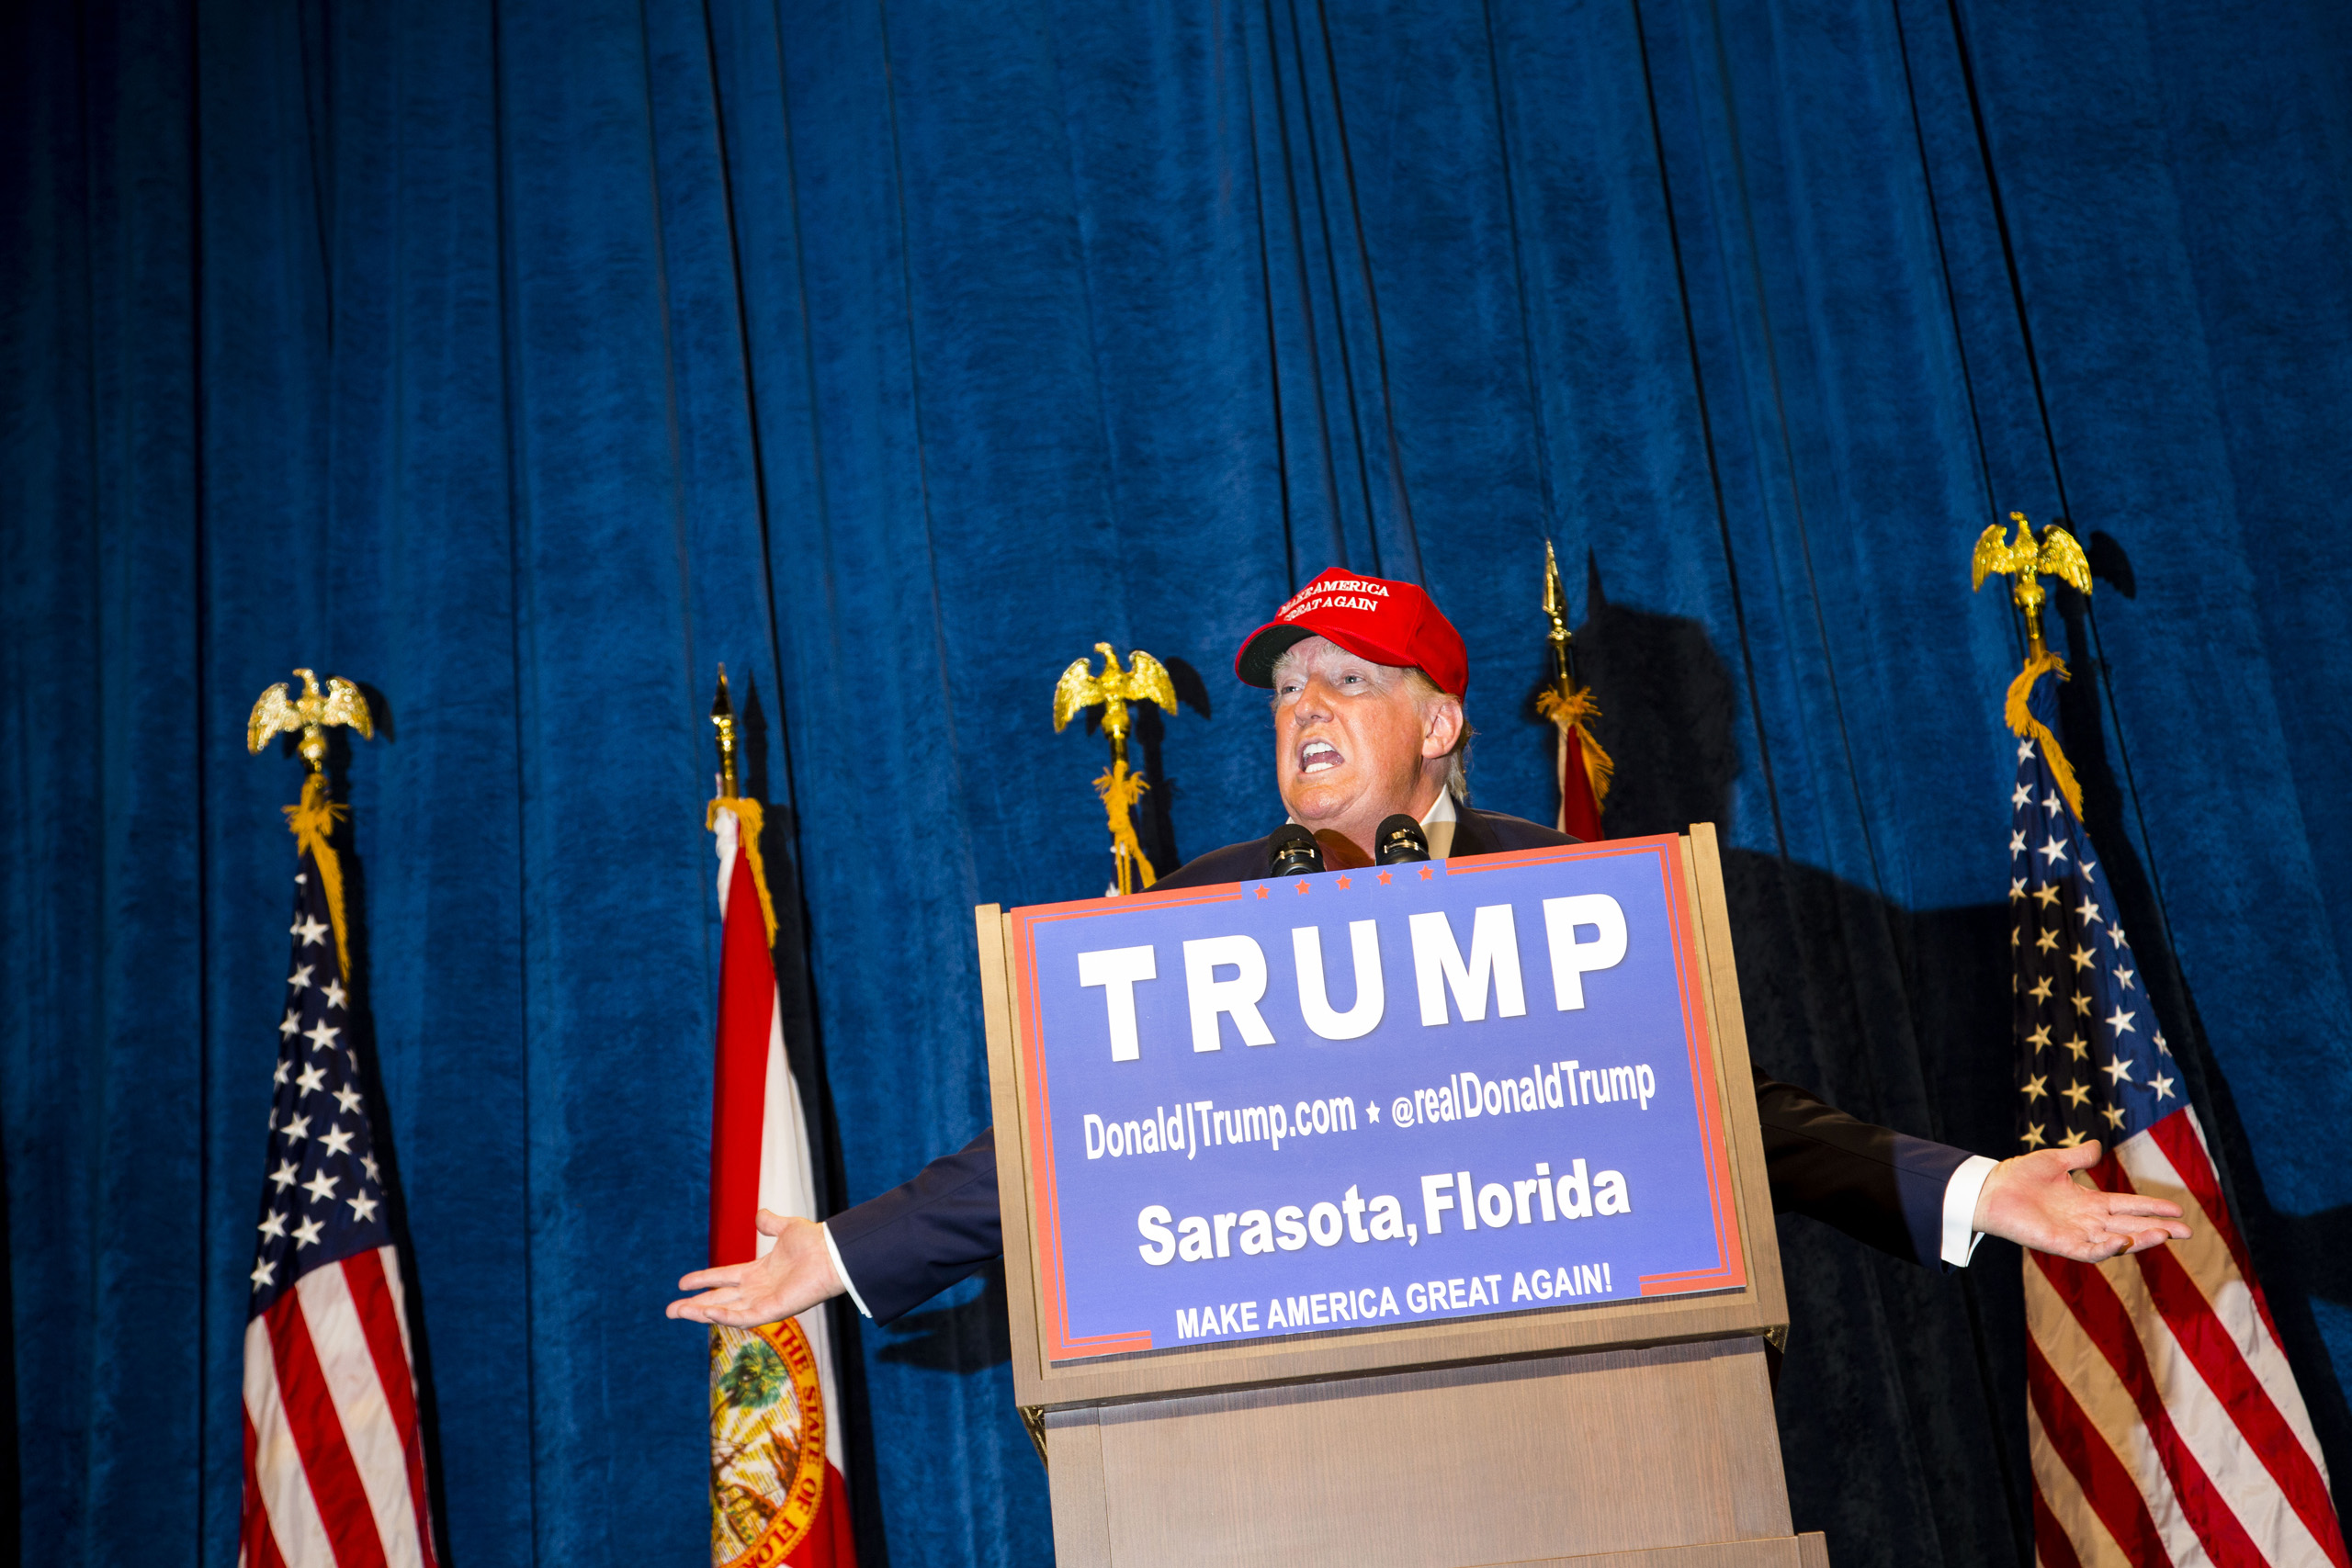 Republican presidential candidate Donald Trump speaks at a rally in Sarasota, Fla. Nov. 28, 2015.